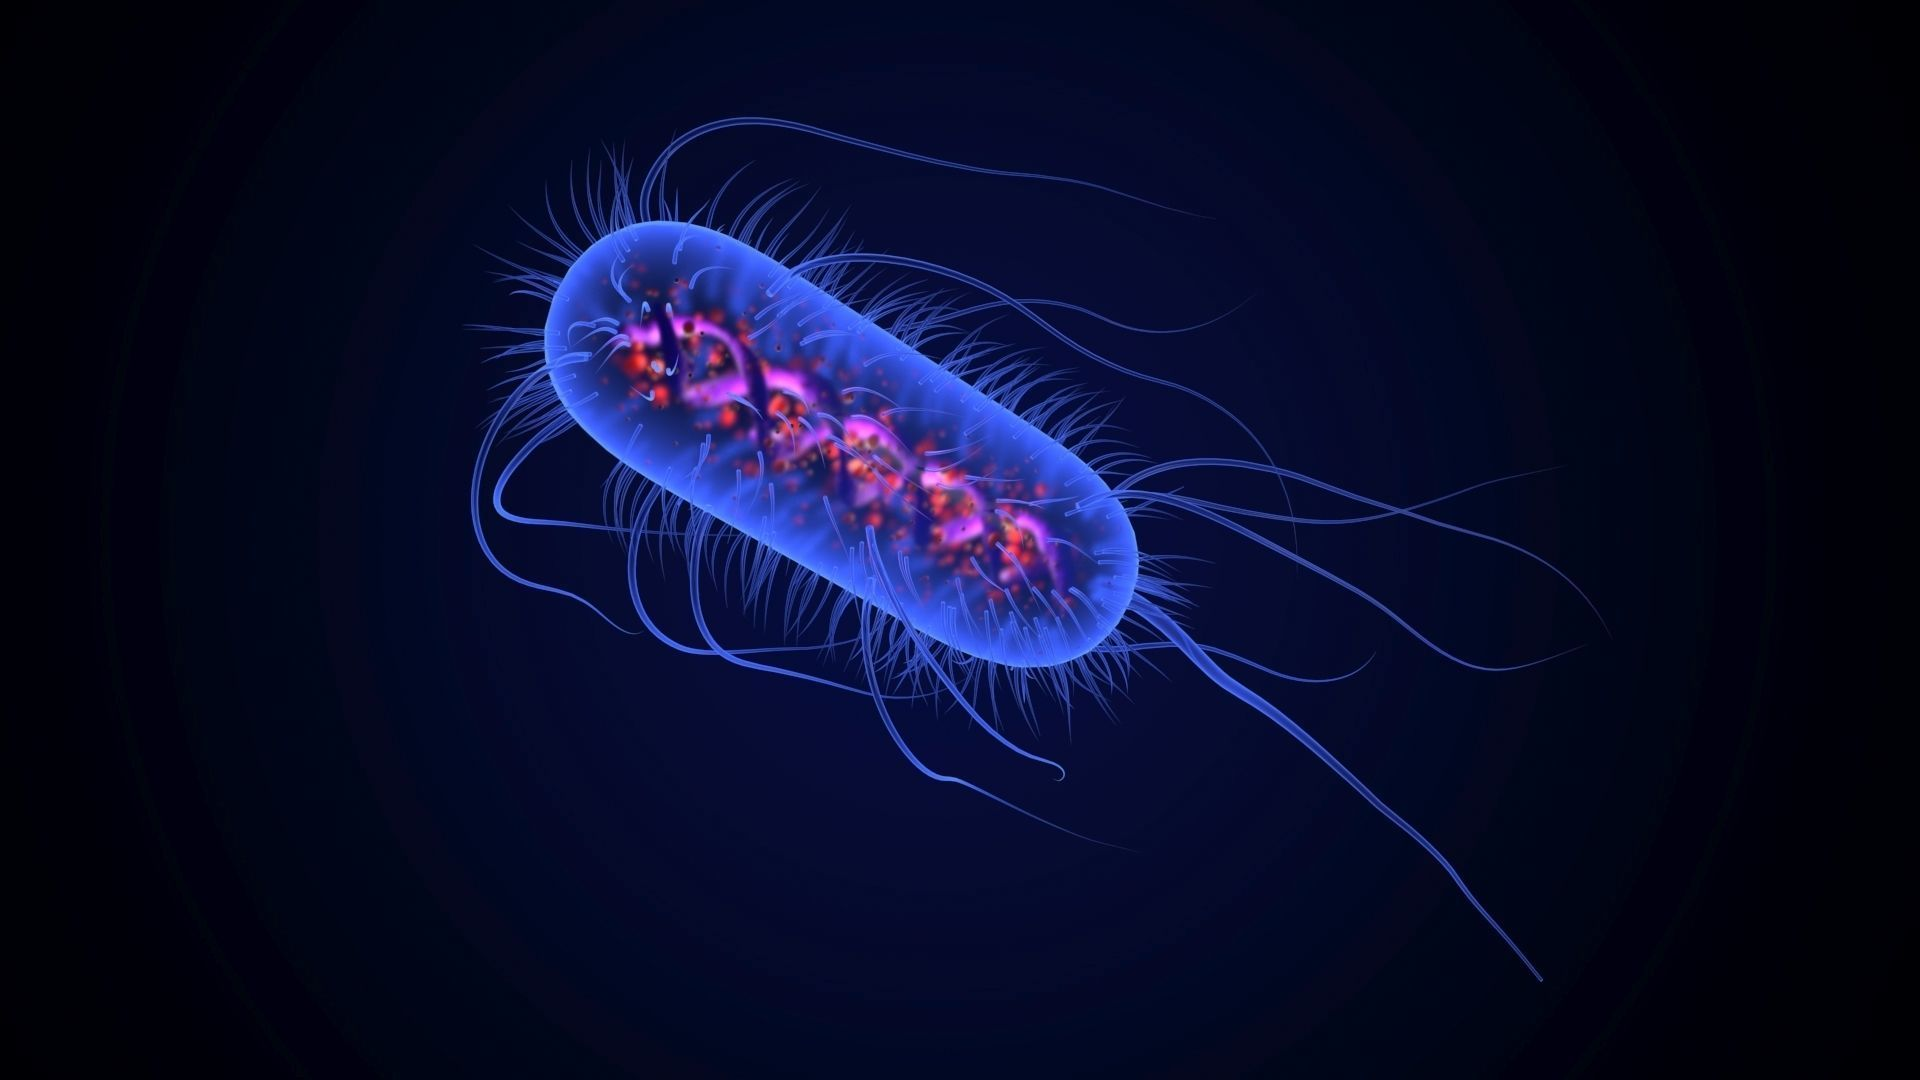 Escherichia Coli Bacteria with internal body parts